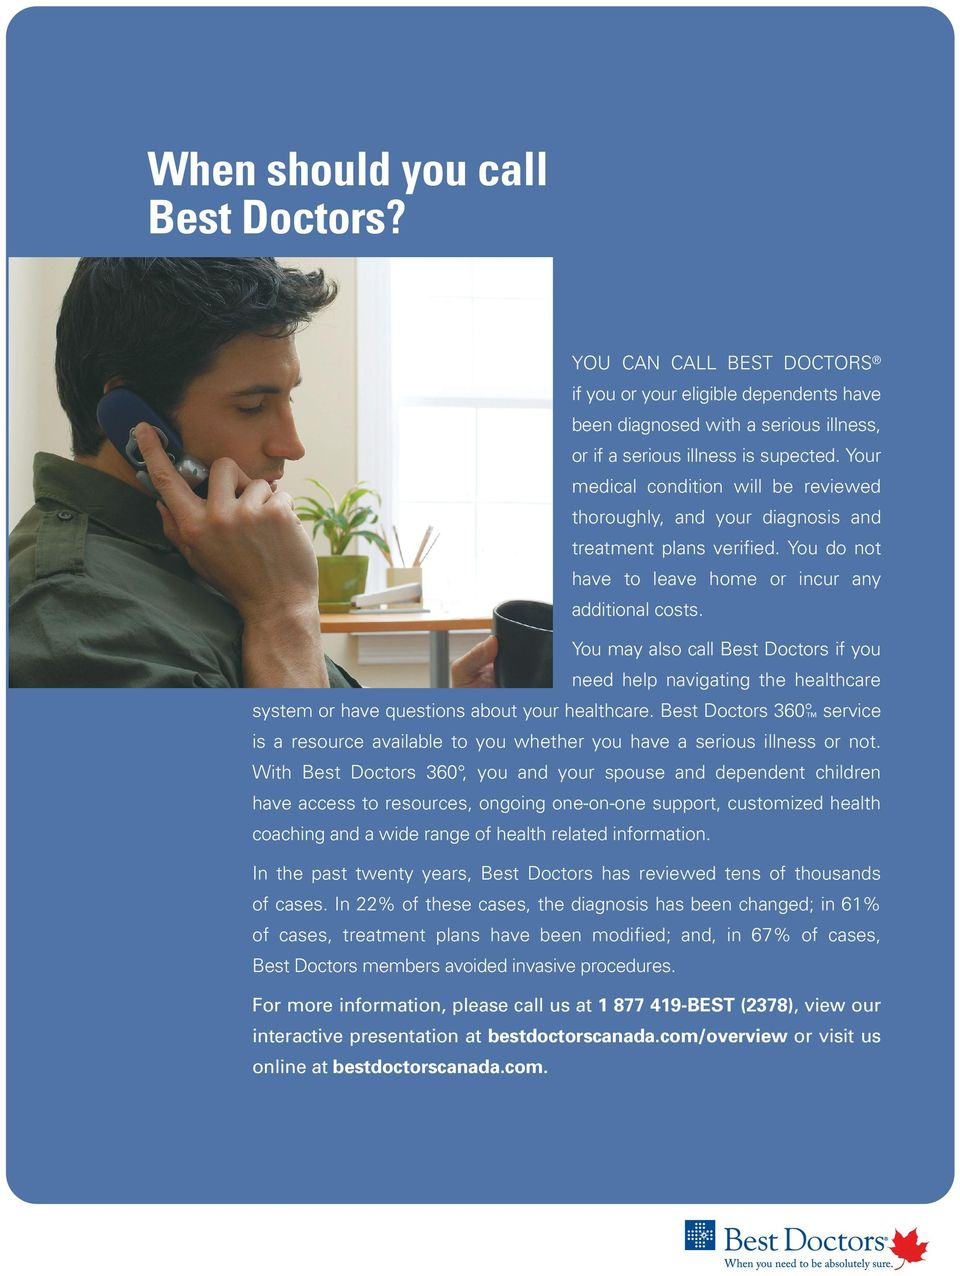 You may also call Best Doctors if you need help navigating the healthcare system or have questions about your healthcare.